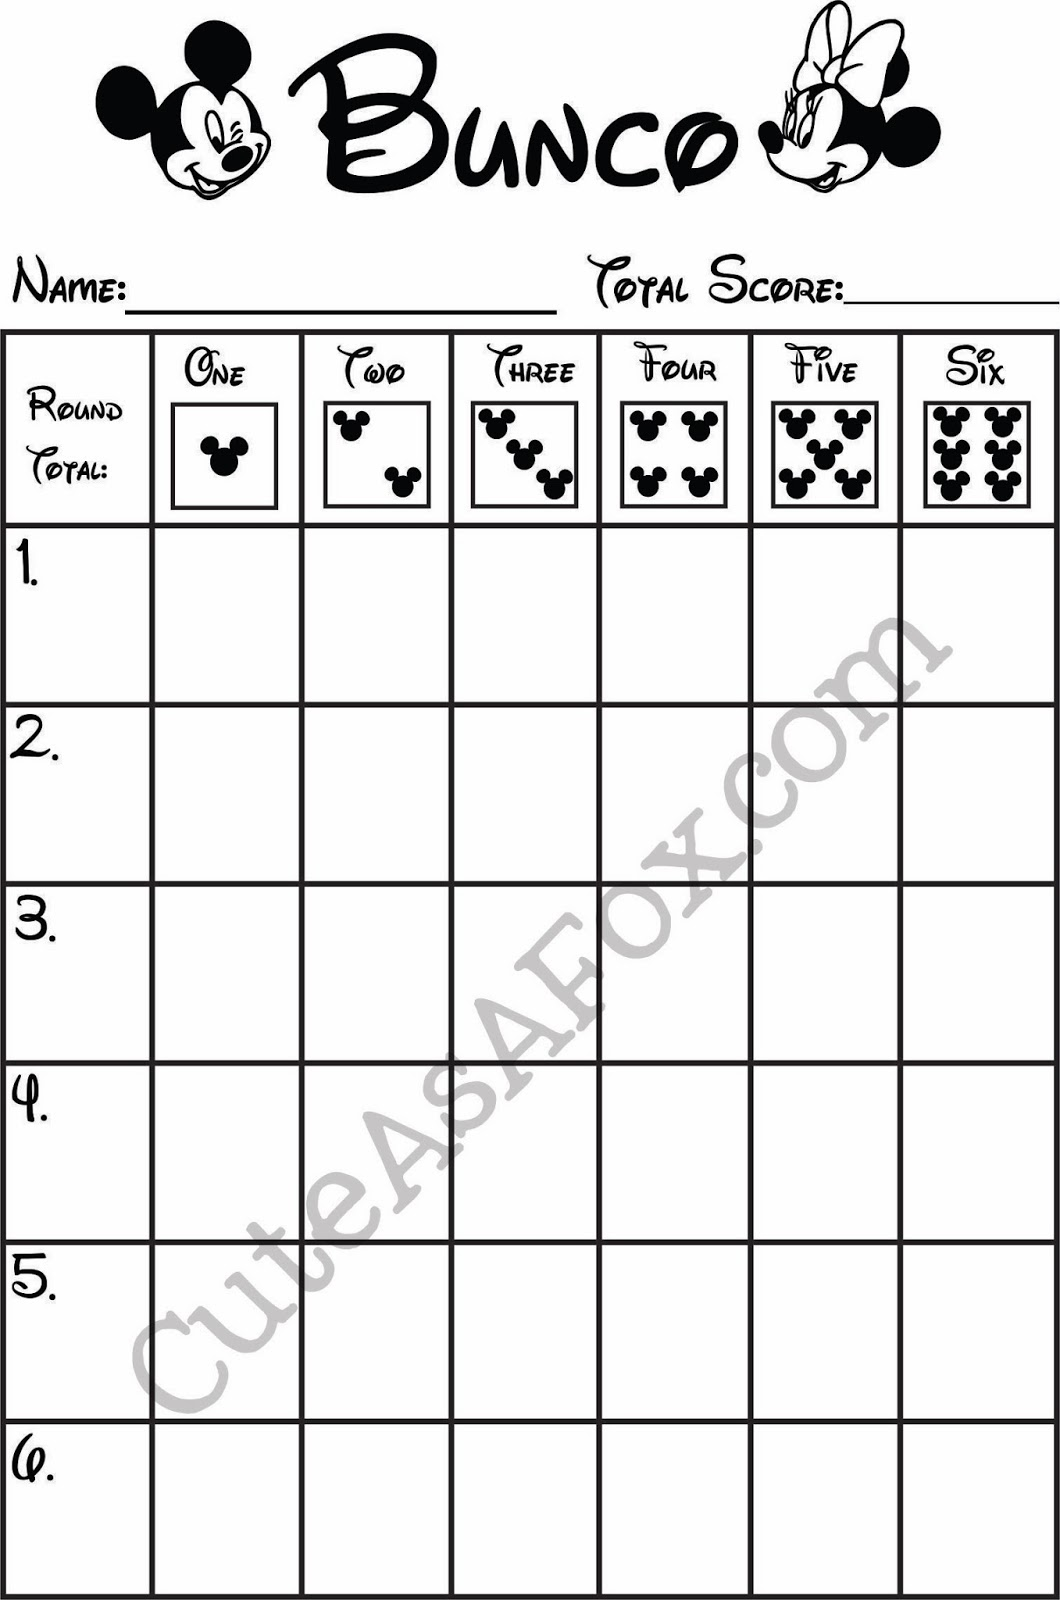 image relating to Bunco Tally Sheets Printable titled Disneyside Bunco Occasion Rating Card Free of charge Printable! - Purple